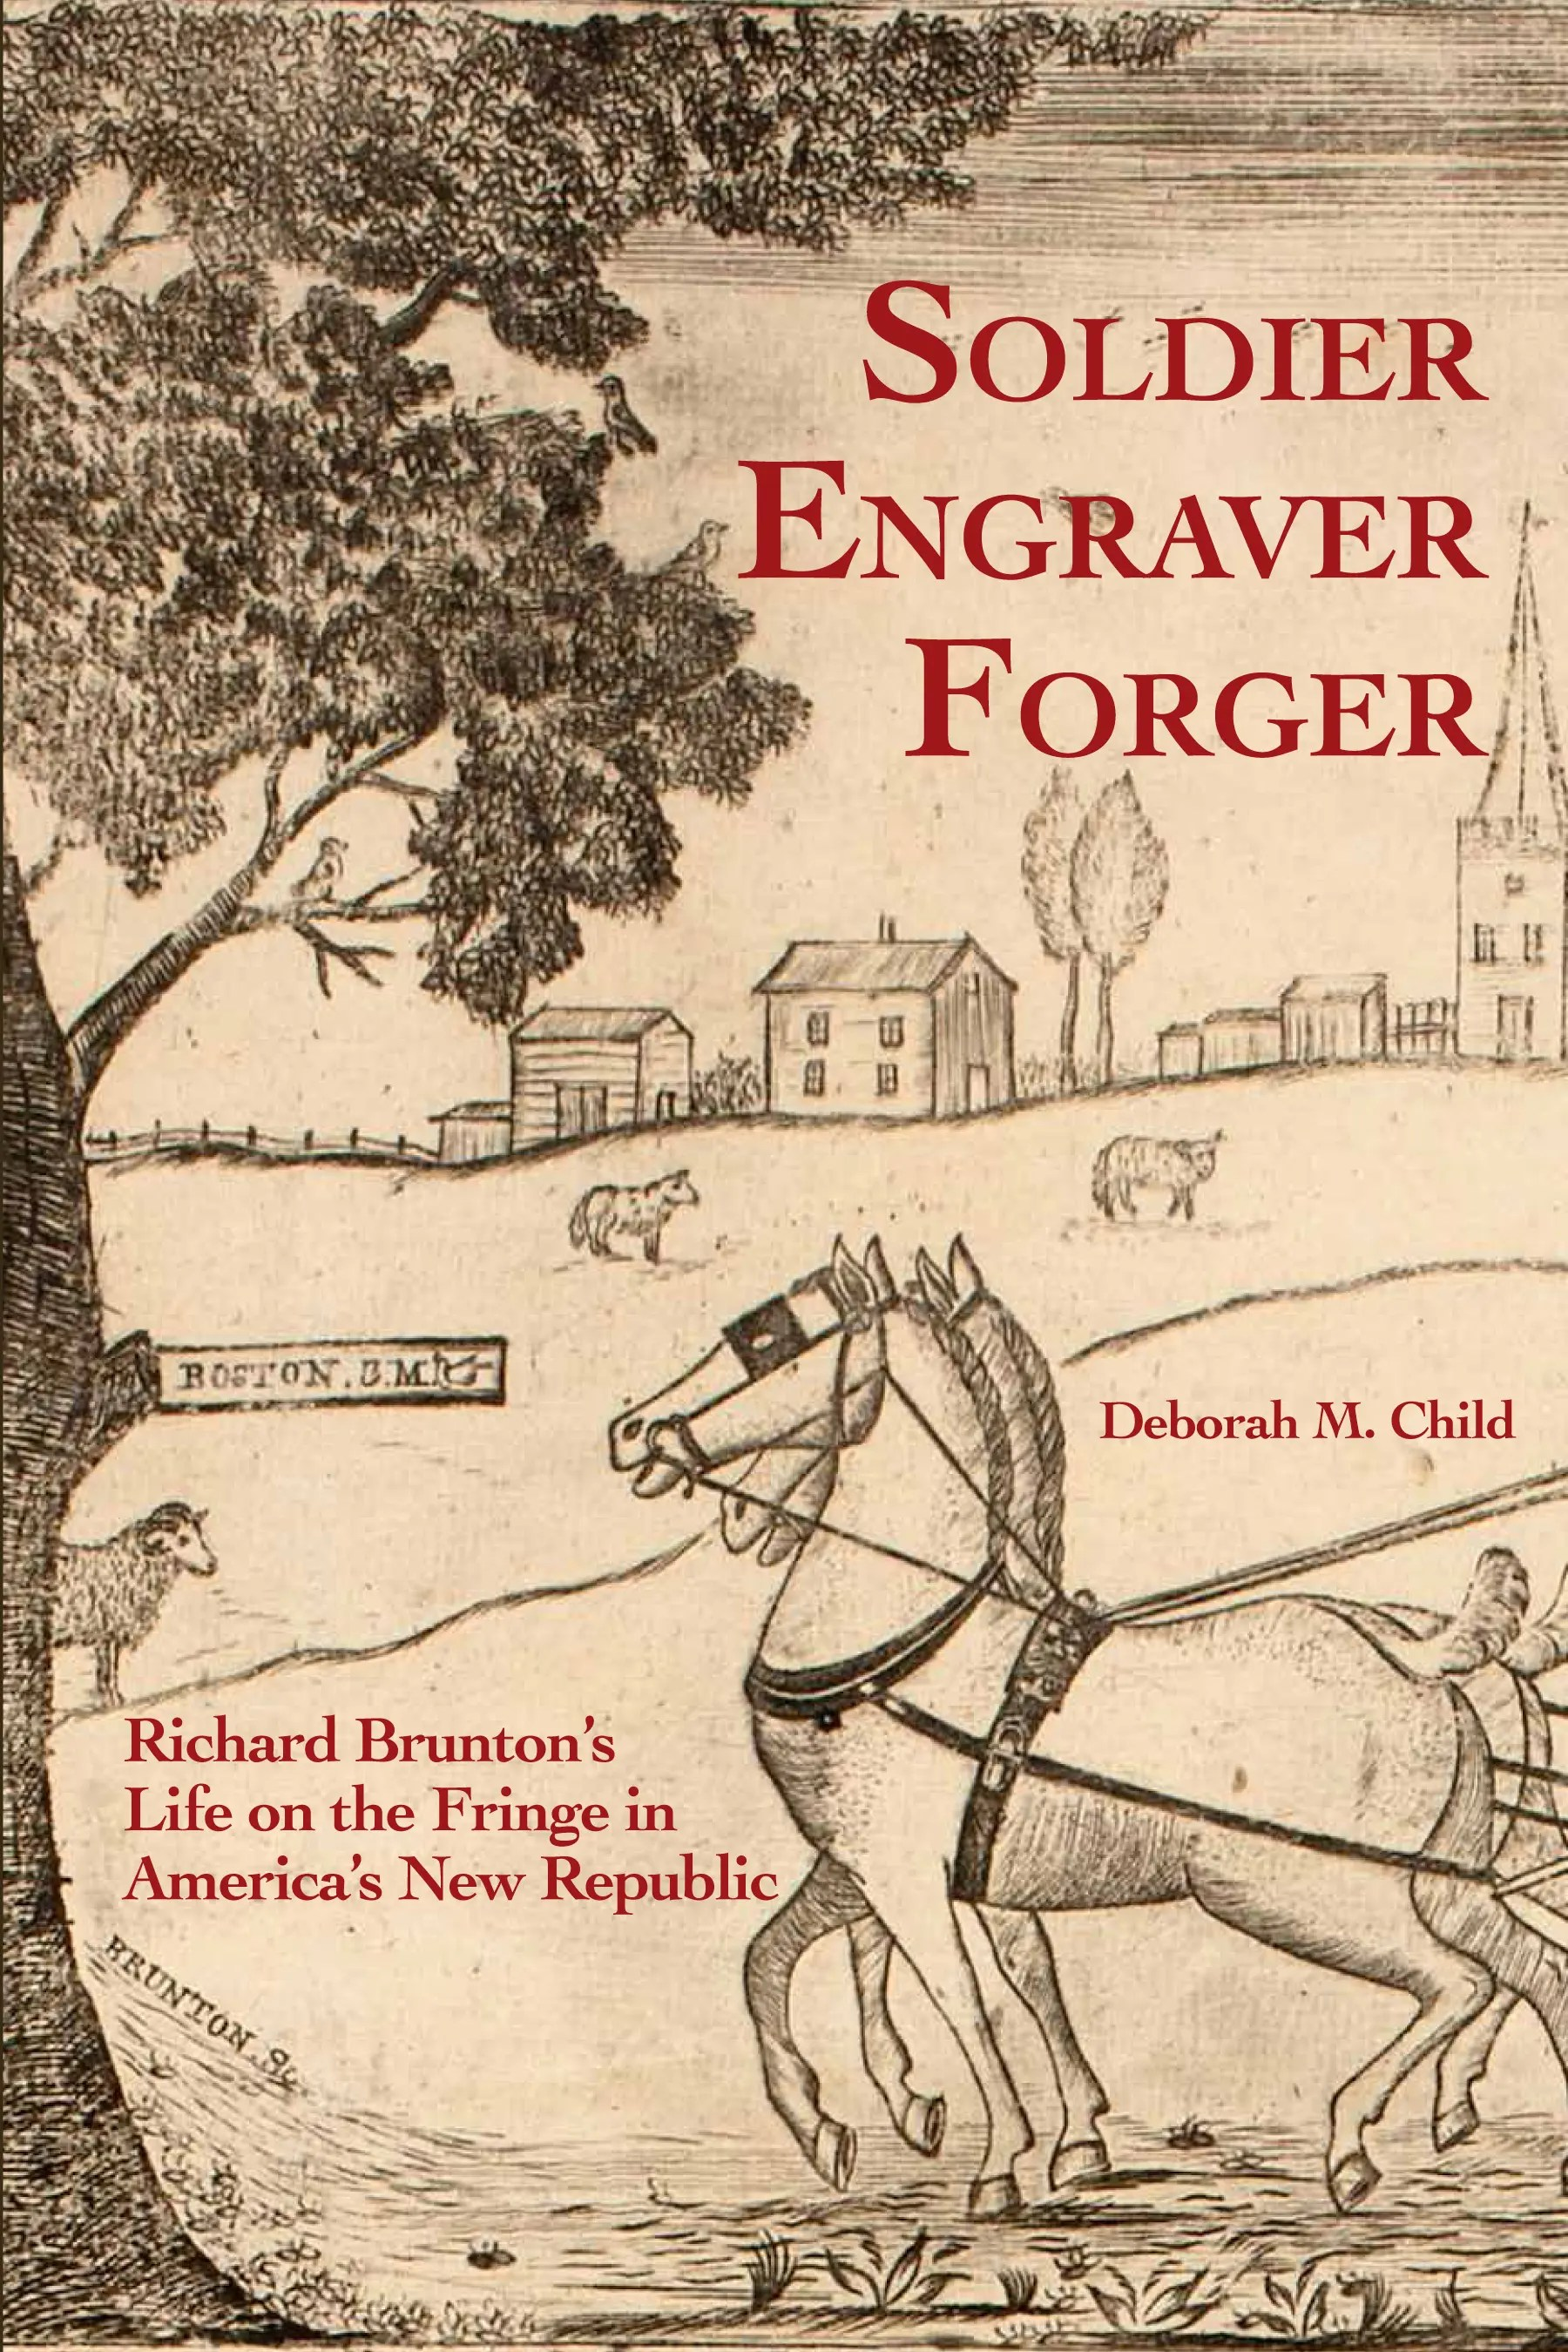 Author Describes Revolutionary Era Engraver And Forger